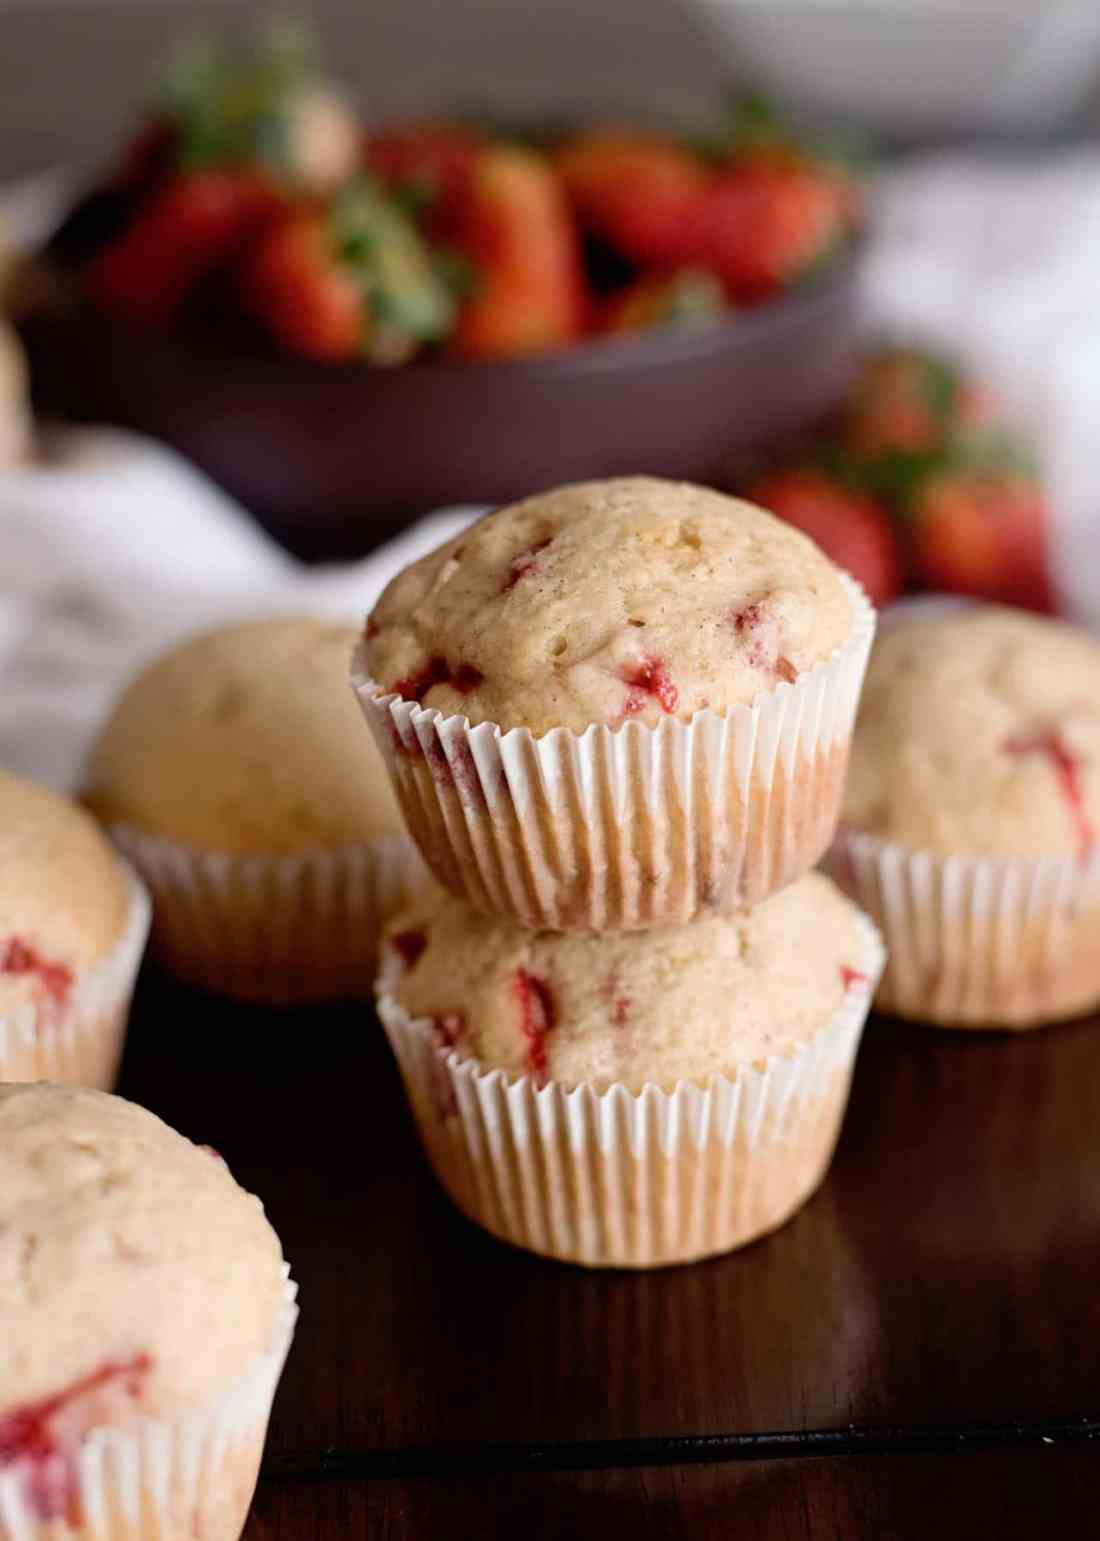 fresh baked strawberry muffins stacked on a dark wood counter